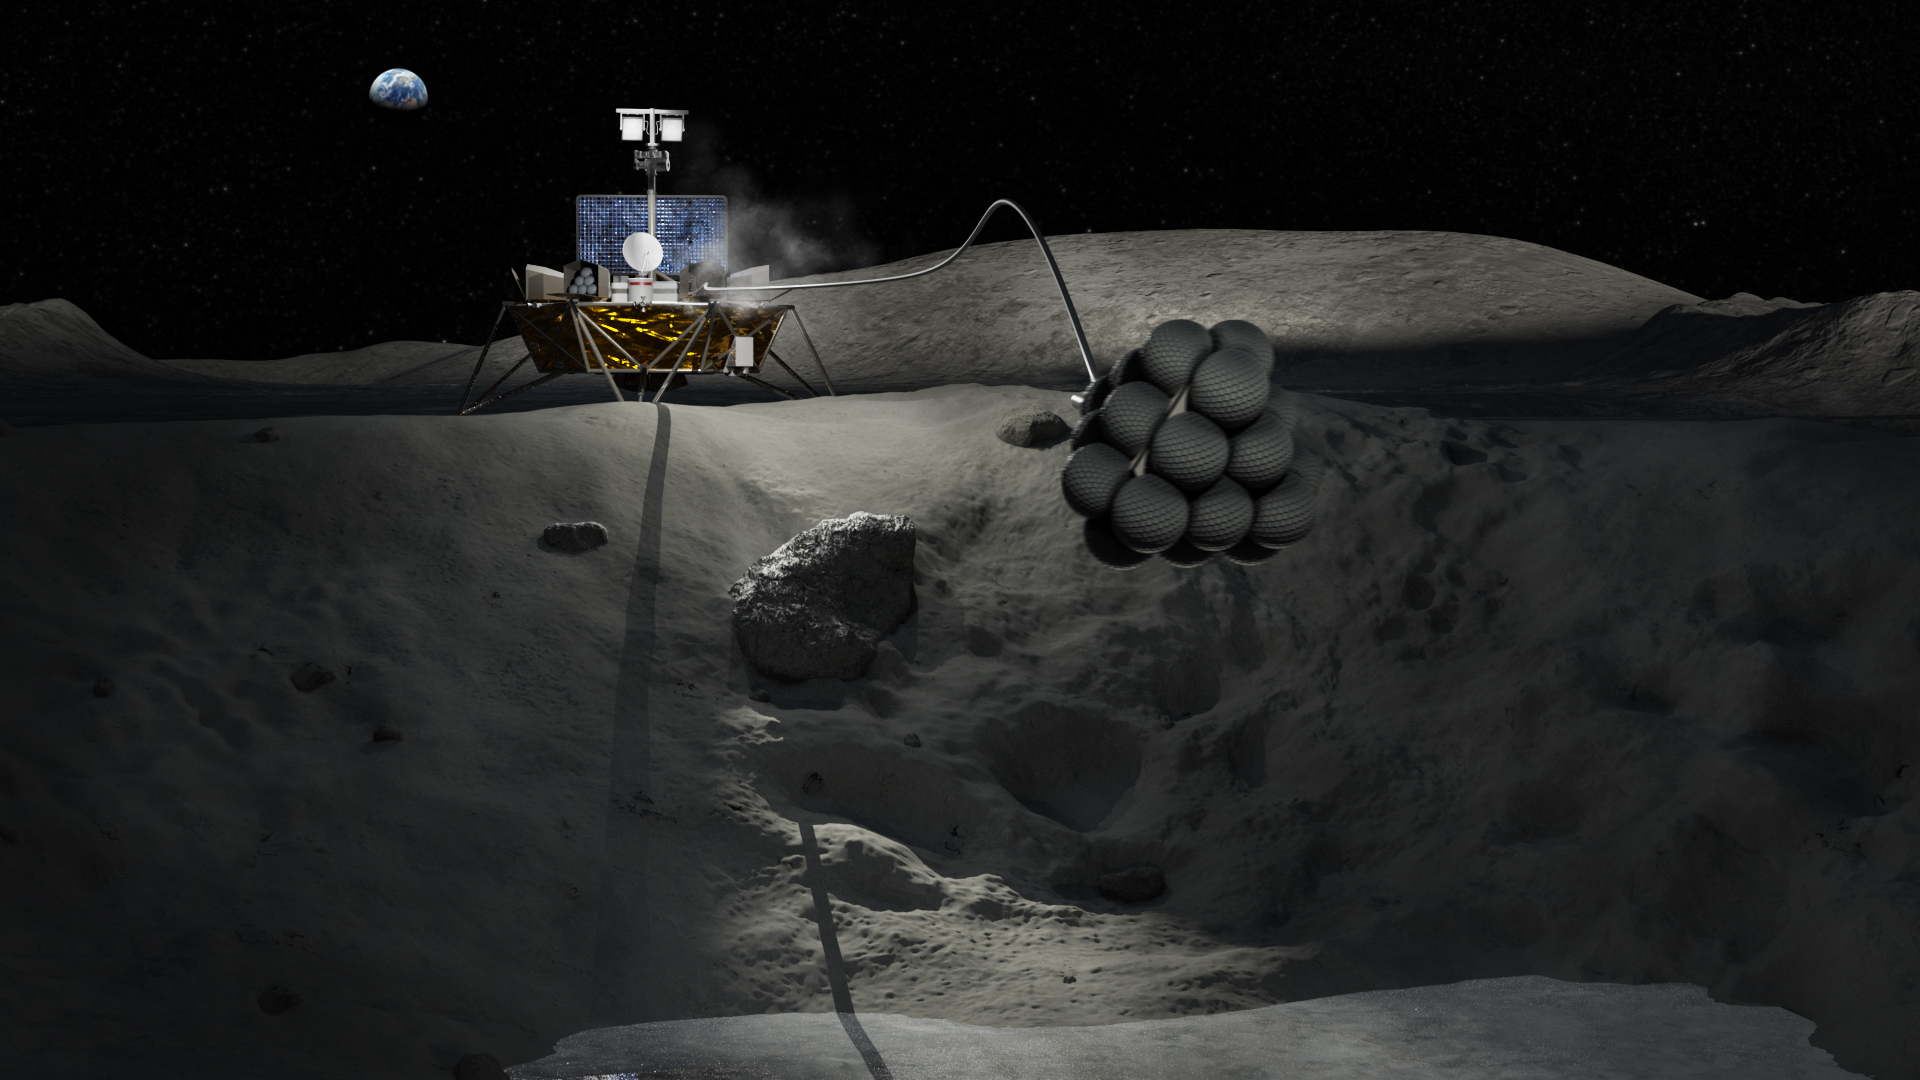 Artist's impression of robotic lunar explorer tethered to an airbag-covered landing pod on the lunar surface. Earth is waxing in the background.